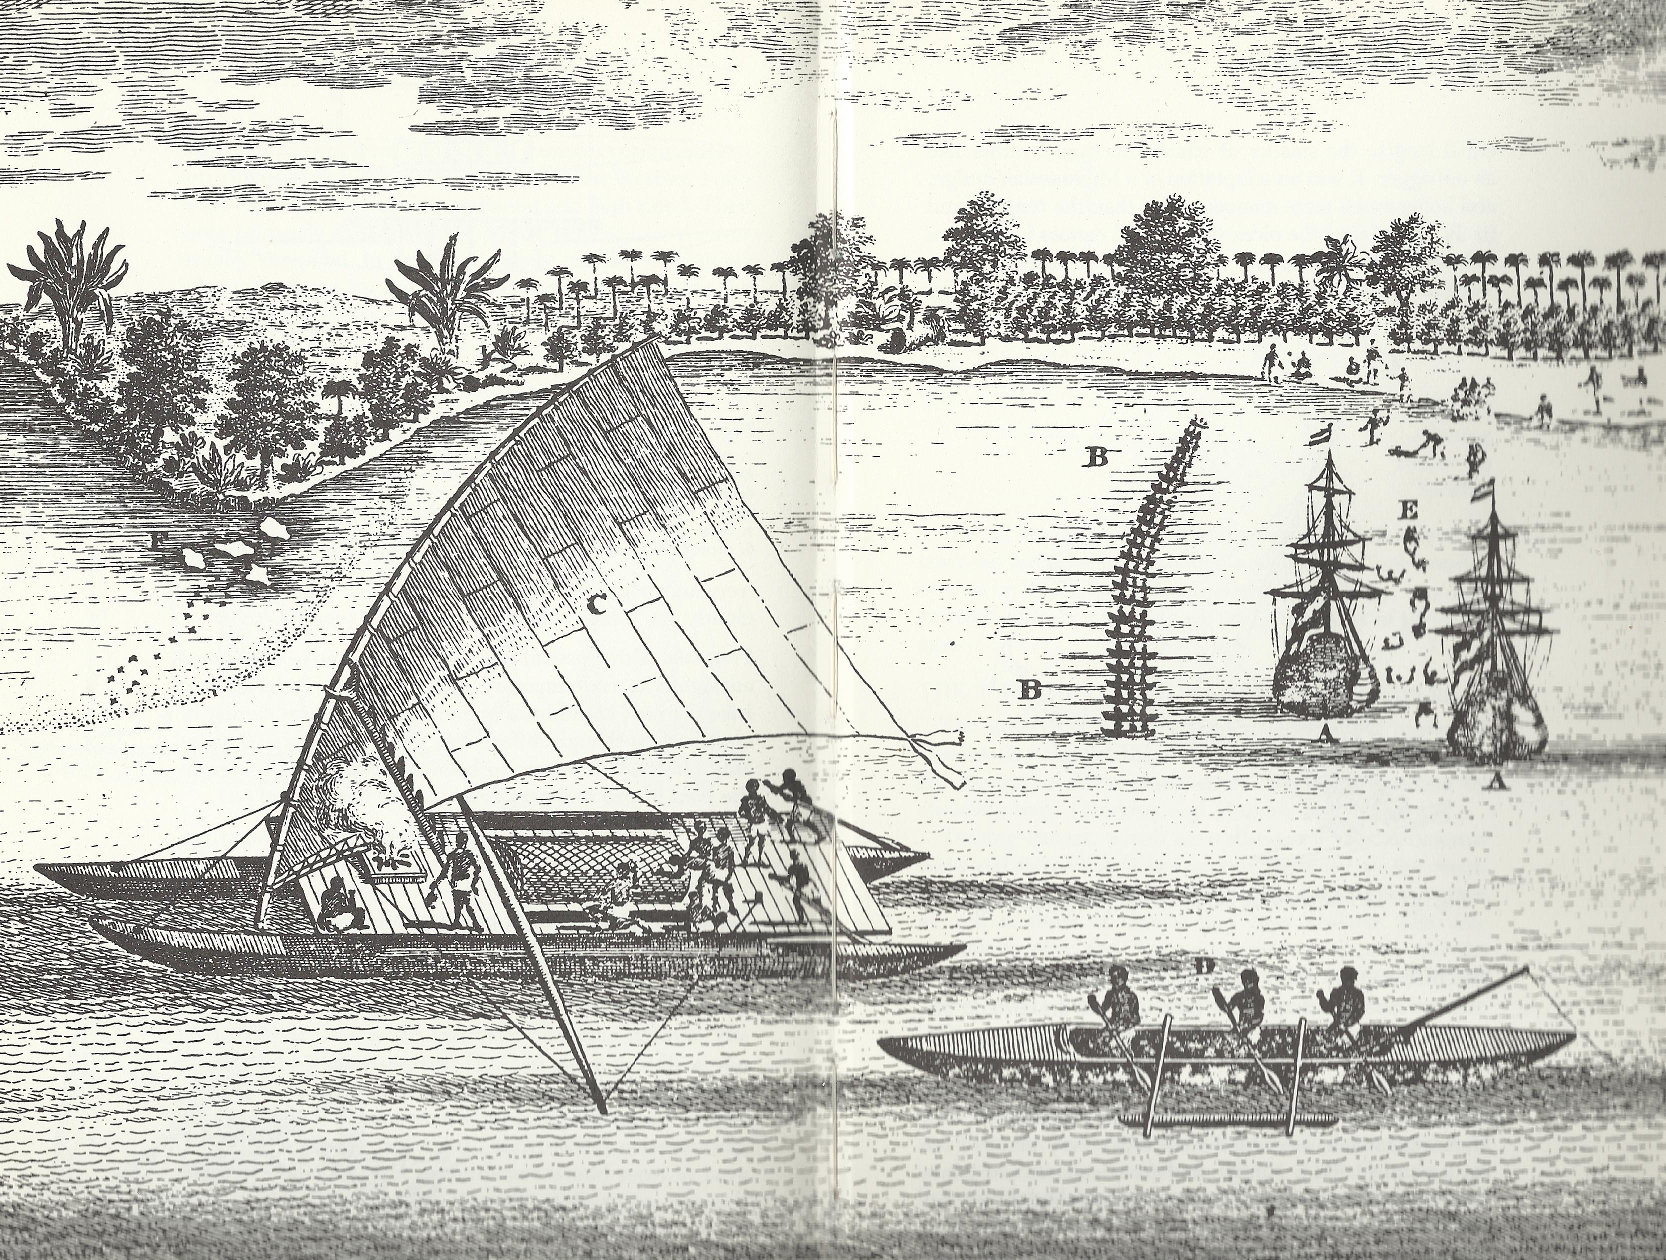 The ships of Abel Tasman's expedition, right-center, and Polynesian outrigger canoe (a Tongan tongiaki) as well as a bonito fishing canoe, front, meet off the coast of one of the Fiji Islands in 1643. This engraving by A Dalrymple, 1770, is based on a drawing by Tasman. Reproduced in We, the Navigators by David Lewis, Australian National University Press, 1972.